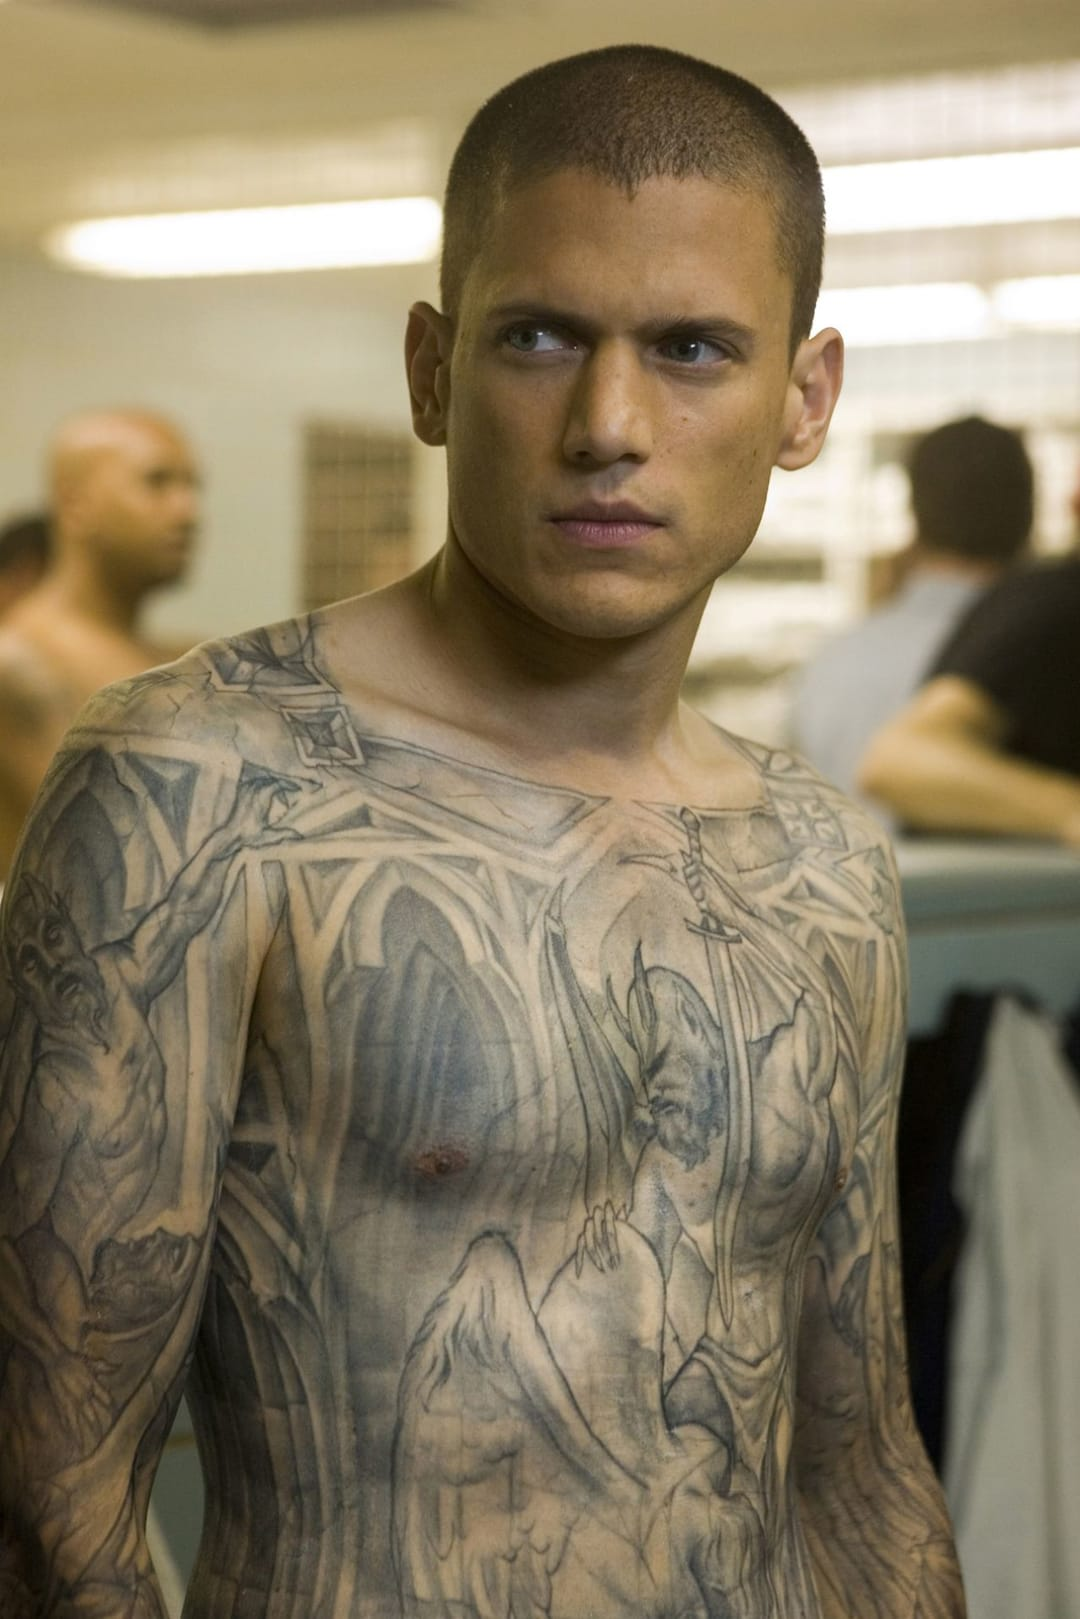 Prison Break's Michael Scofield Is Back and His Tattoos Might Be Too!